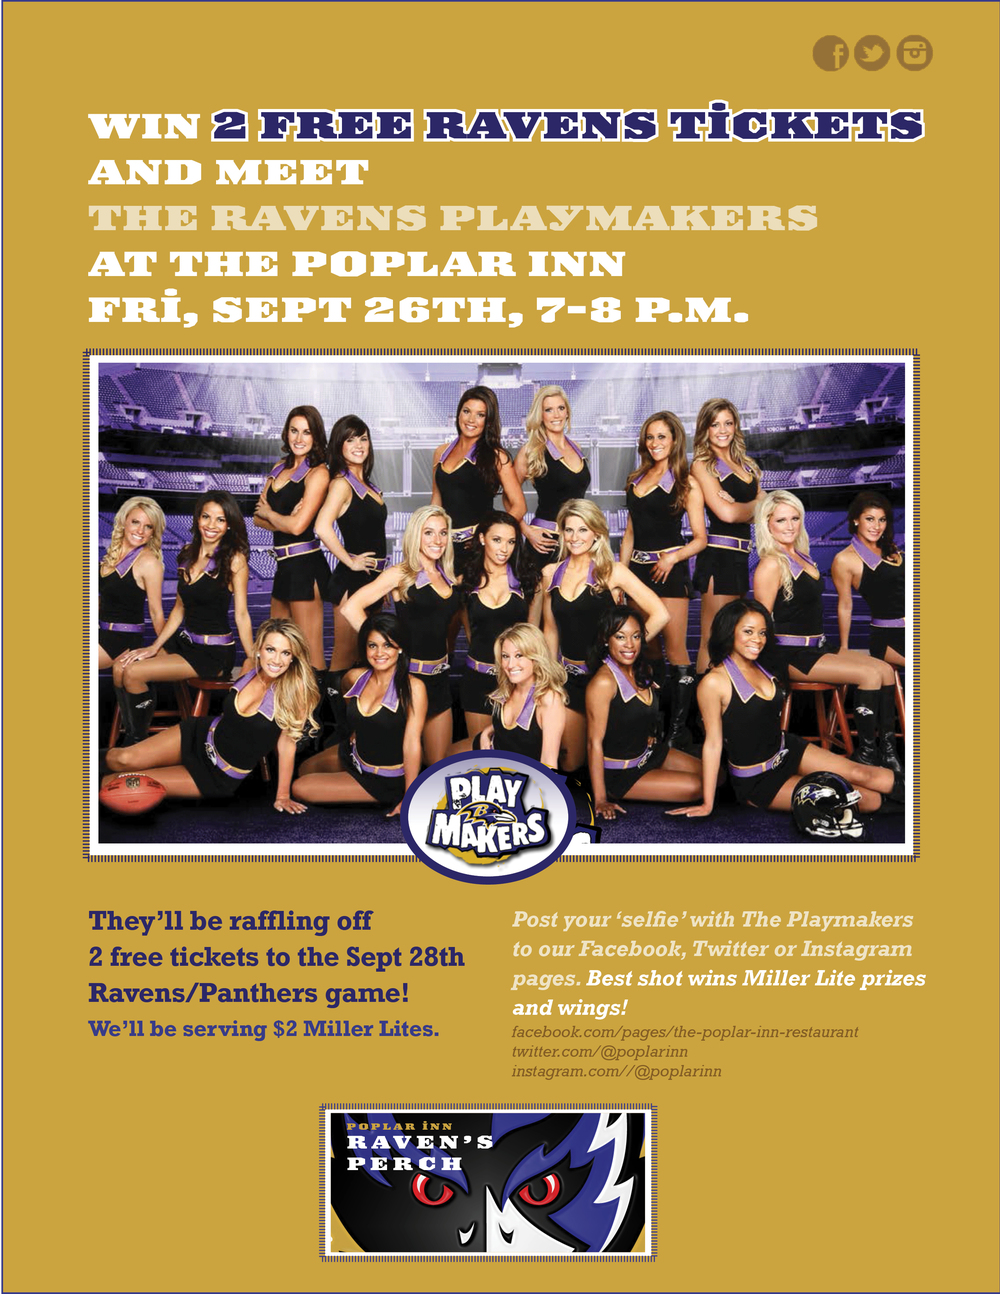 Come in and win Ravens tickets from the Ravens Playmakers!